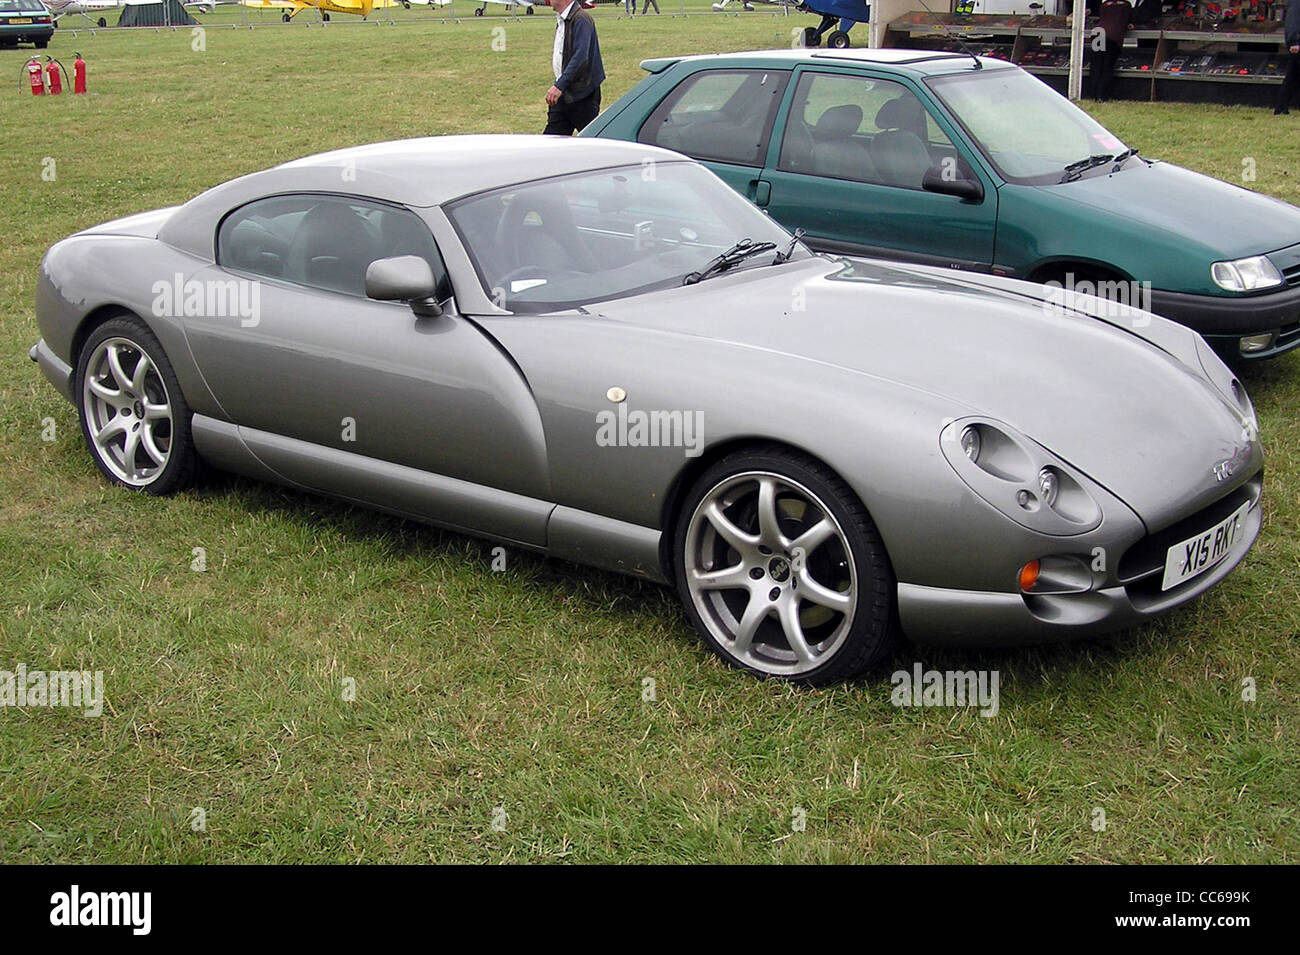 TVR Cerbera, seen at Kemble Airfield, Gloucestershire, England. - Stock Image